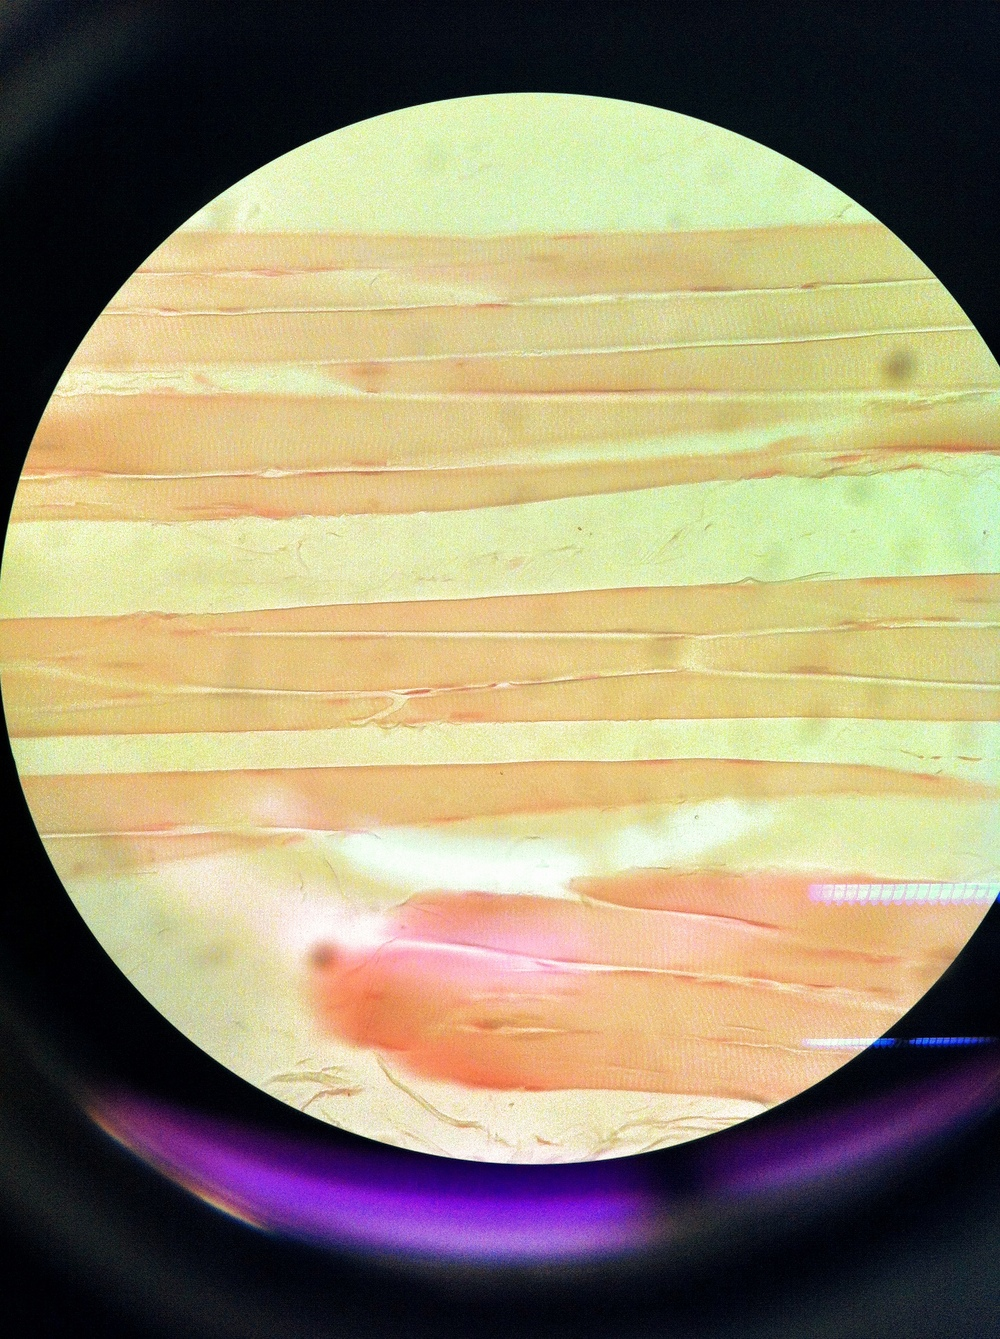 skeletal muscle 400X